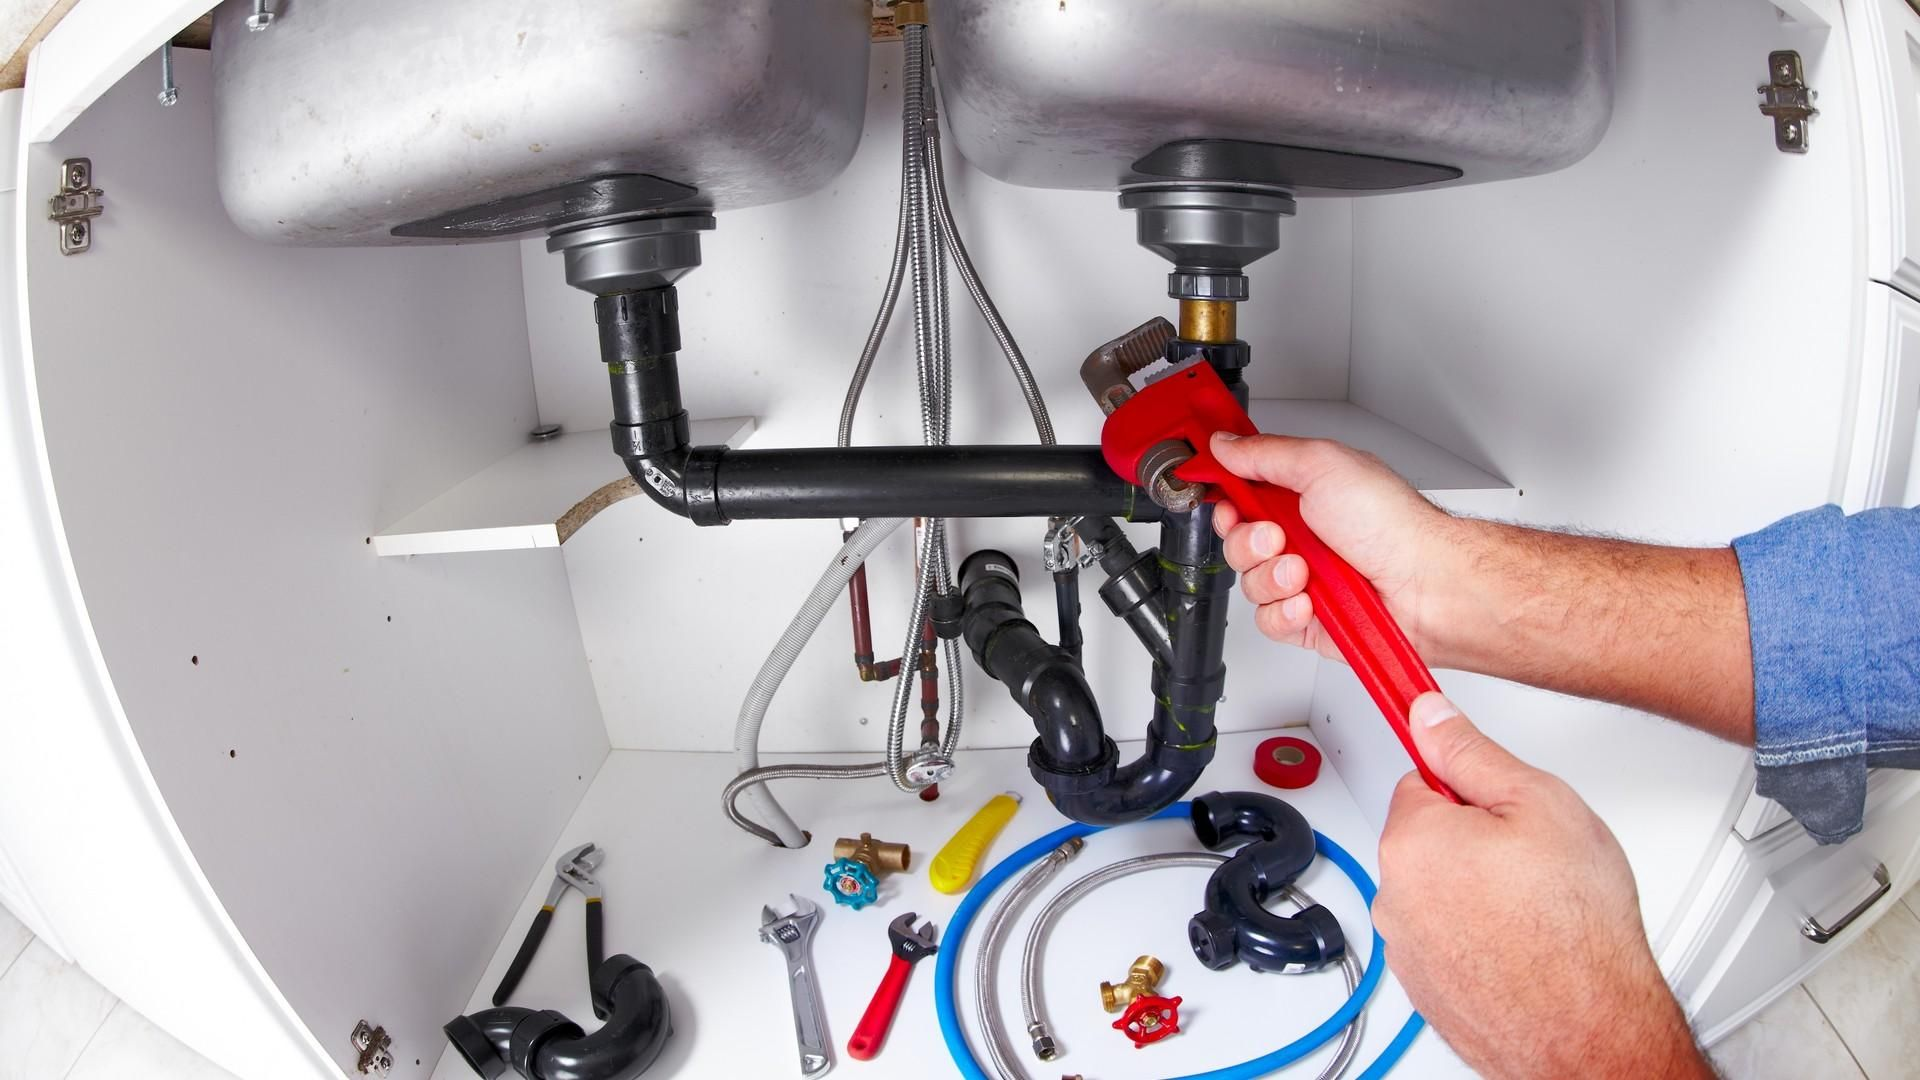 Plumbing Service | Drain repair, Plumbing problems, Furnace repair